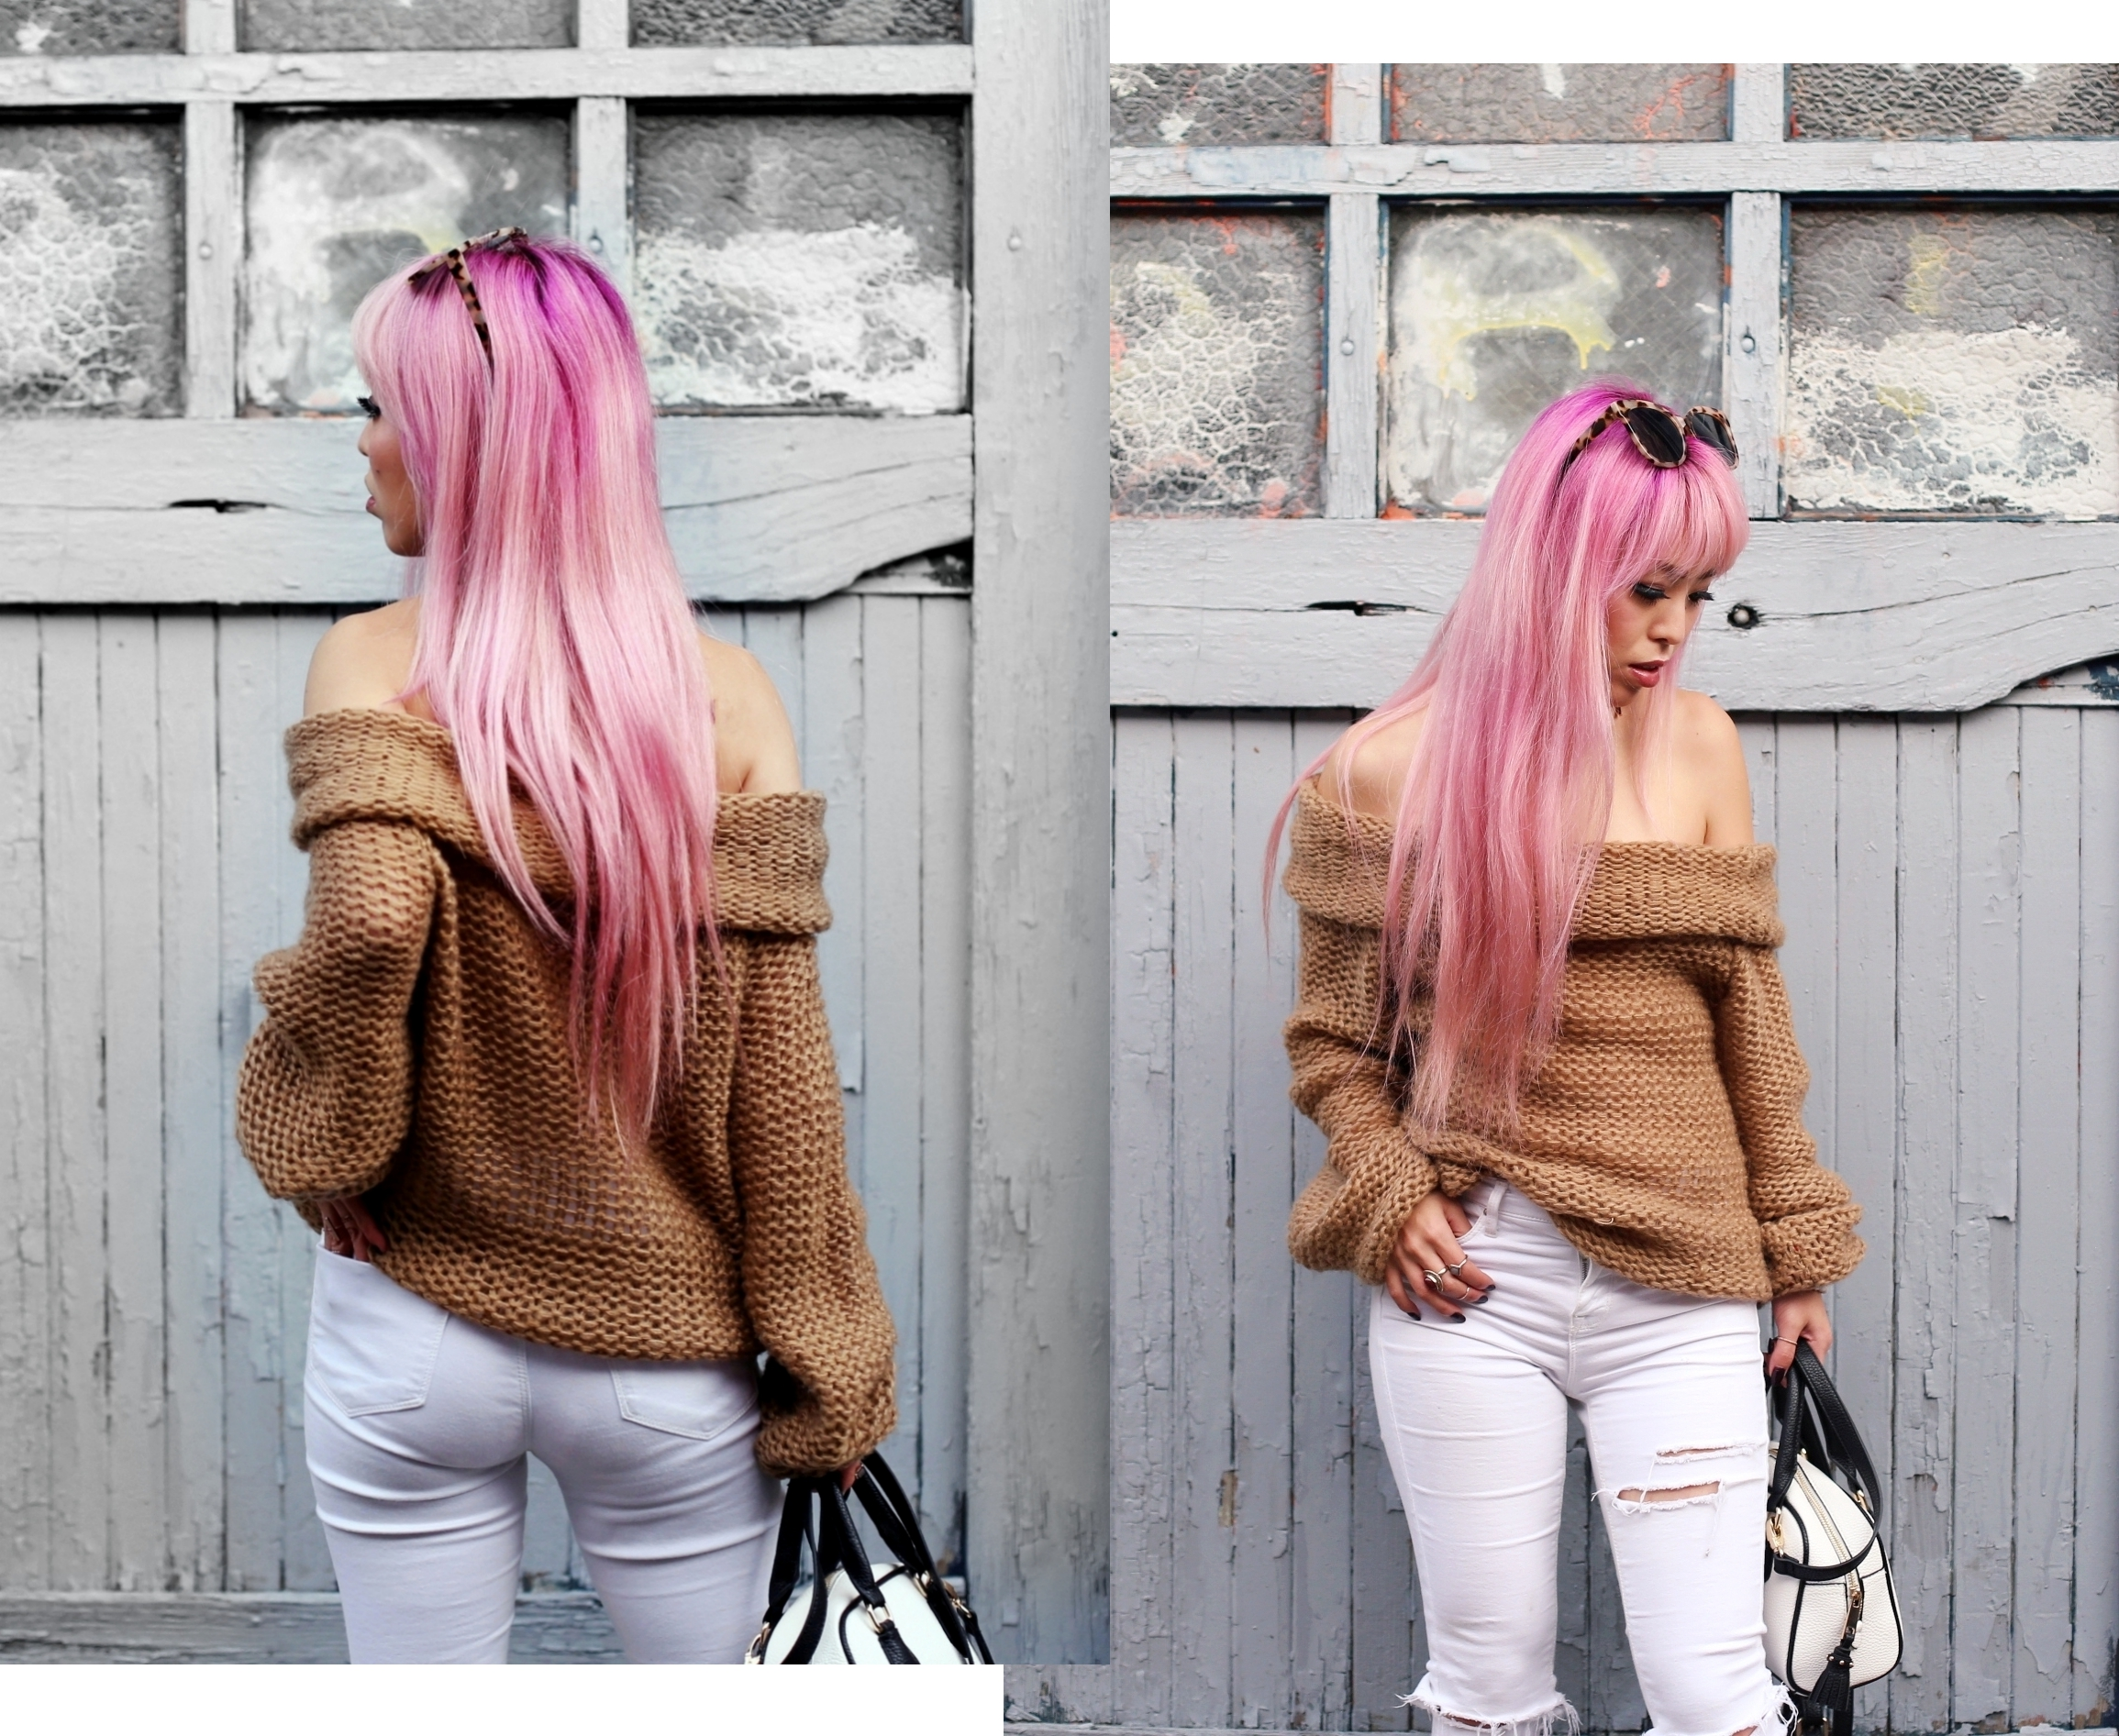 Urban Outfitters Sunglasses_Camel Off The Shoulder Sweater_TOPSHOP white jeans_ZARA Bag_ASOS Snake Skin Heels_Shop Dixi Lace Choker_Aika's Love Closet_Seattle Fashion Blogger_Japanese_Pink Hair_Colored Hair 5